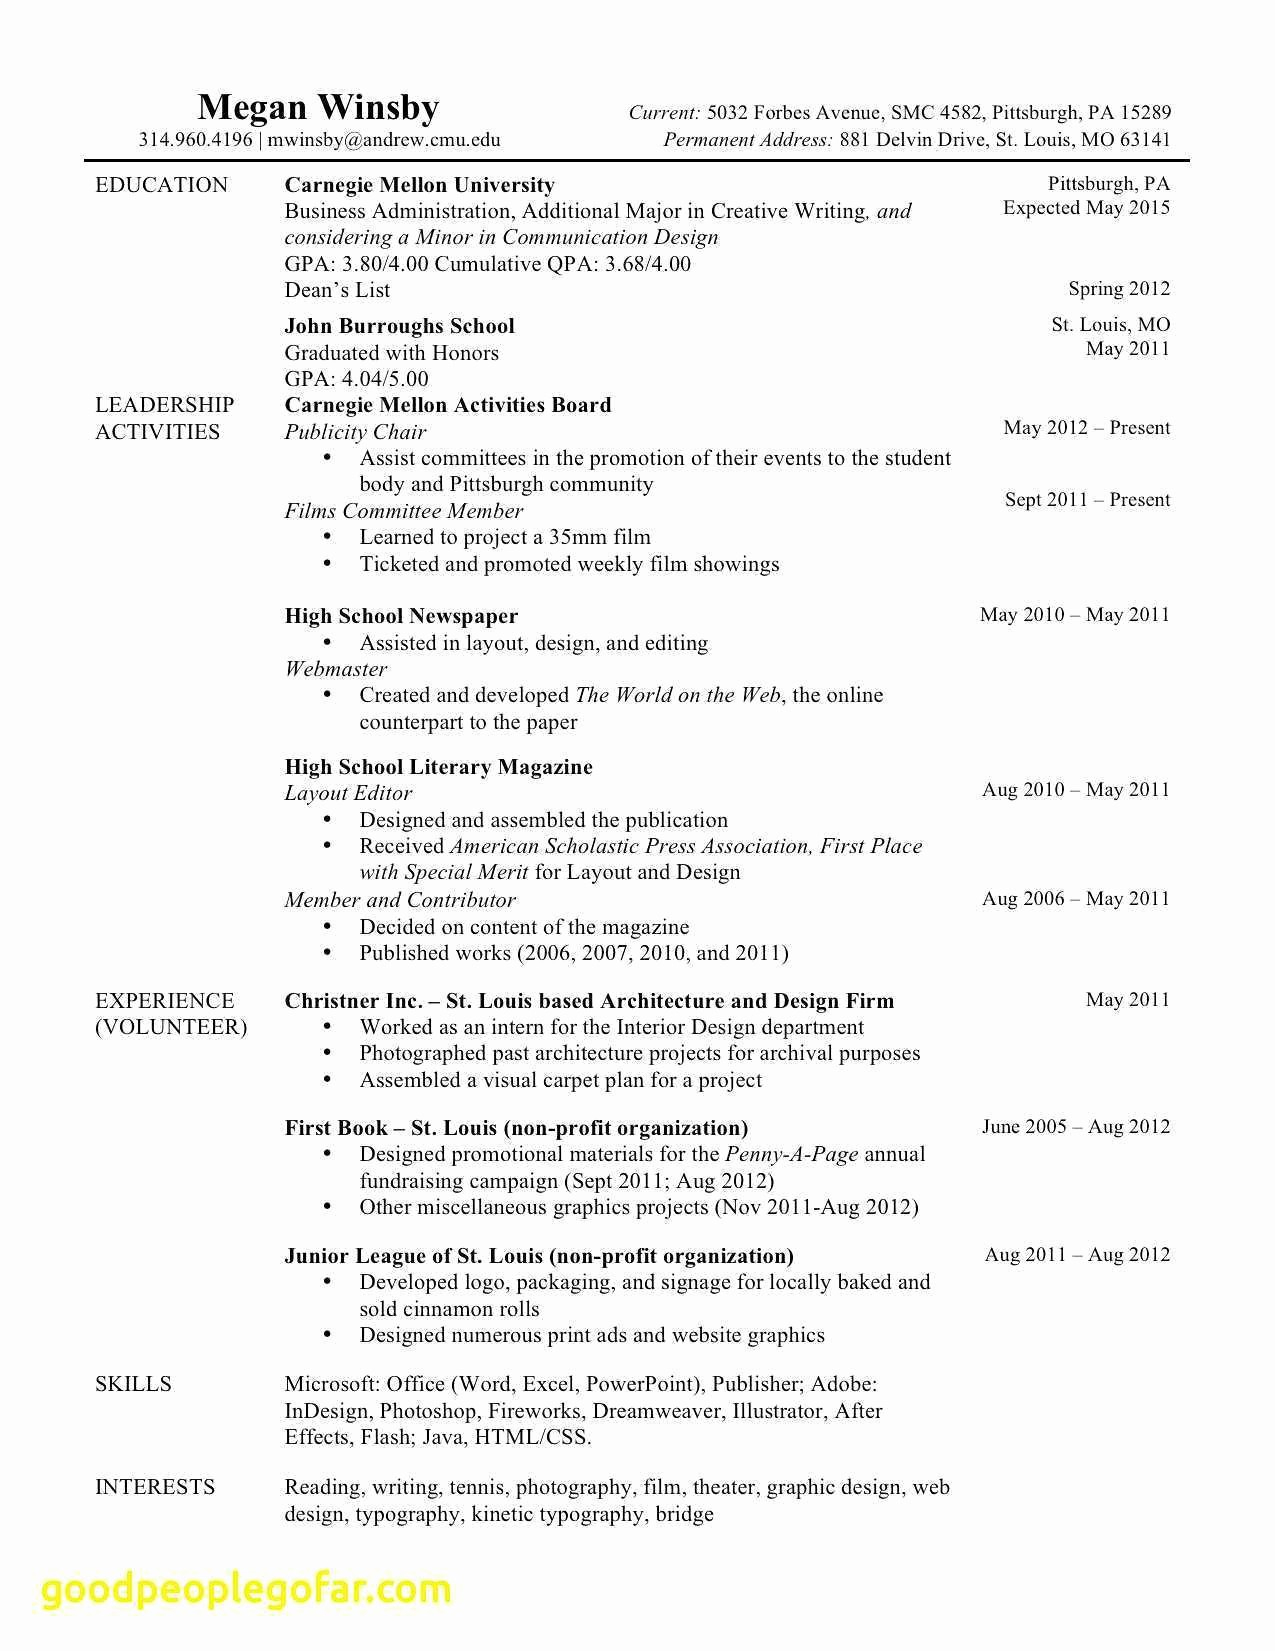 Update My Resume - Awesome Update My Resume